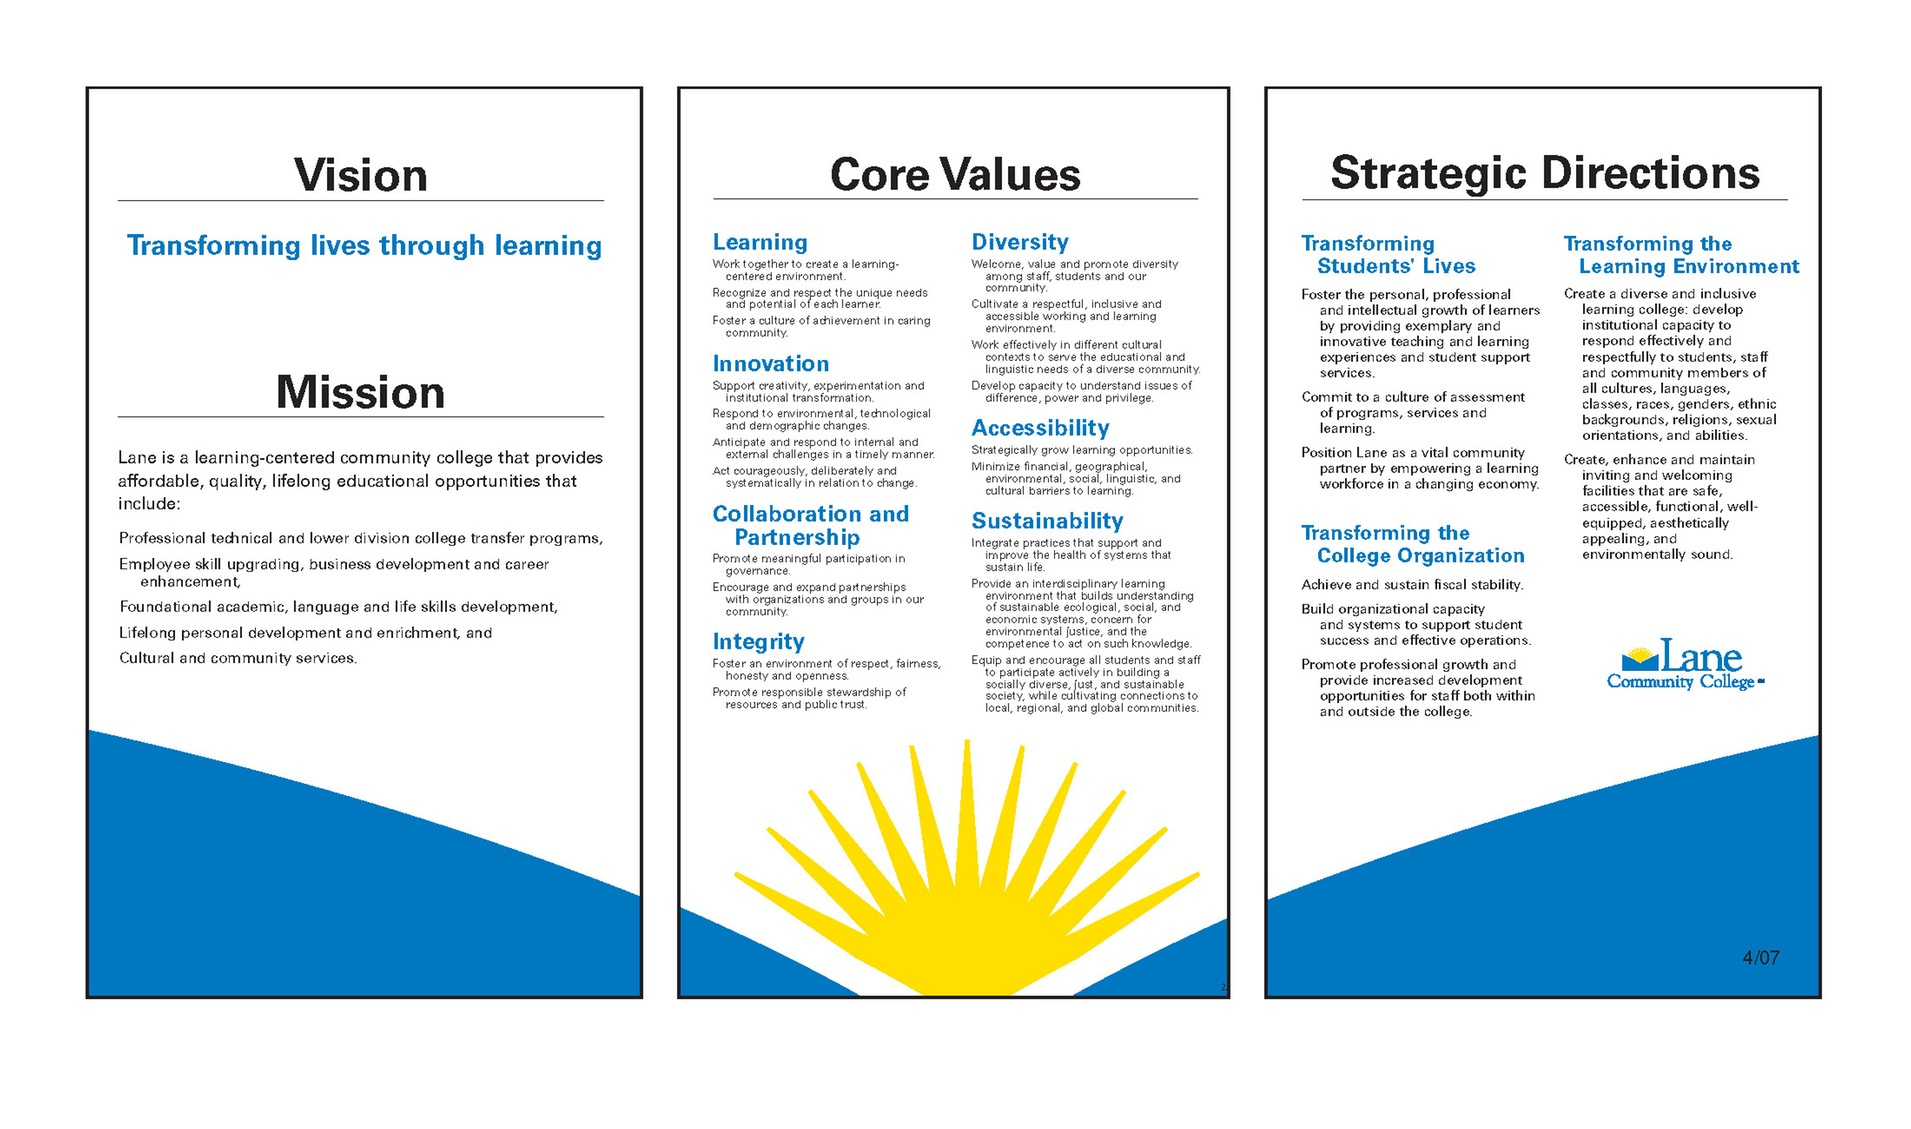 Lane Community College Vision Statement